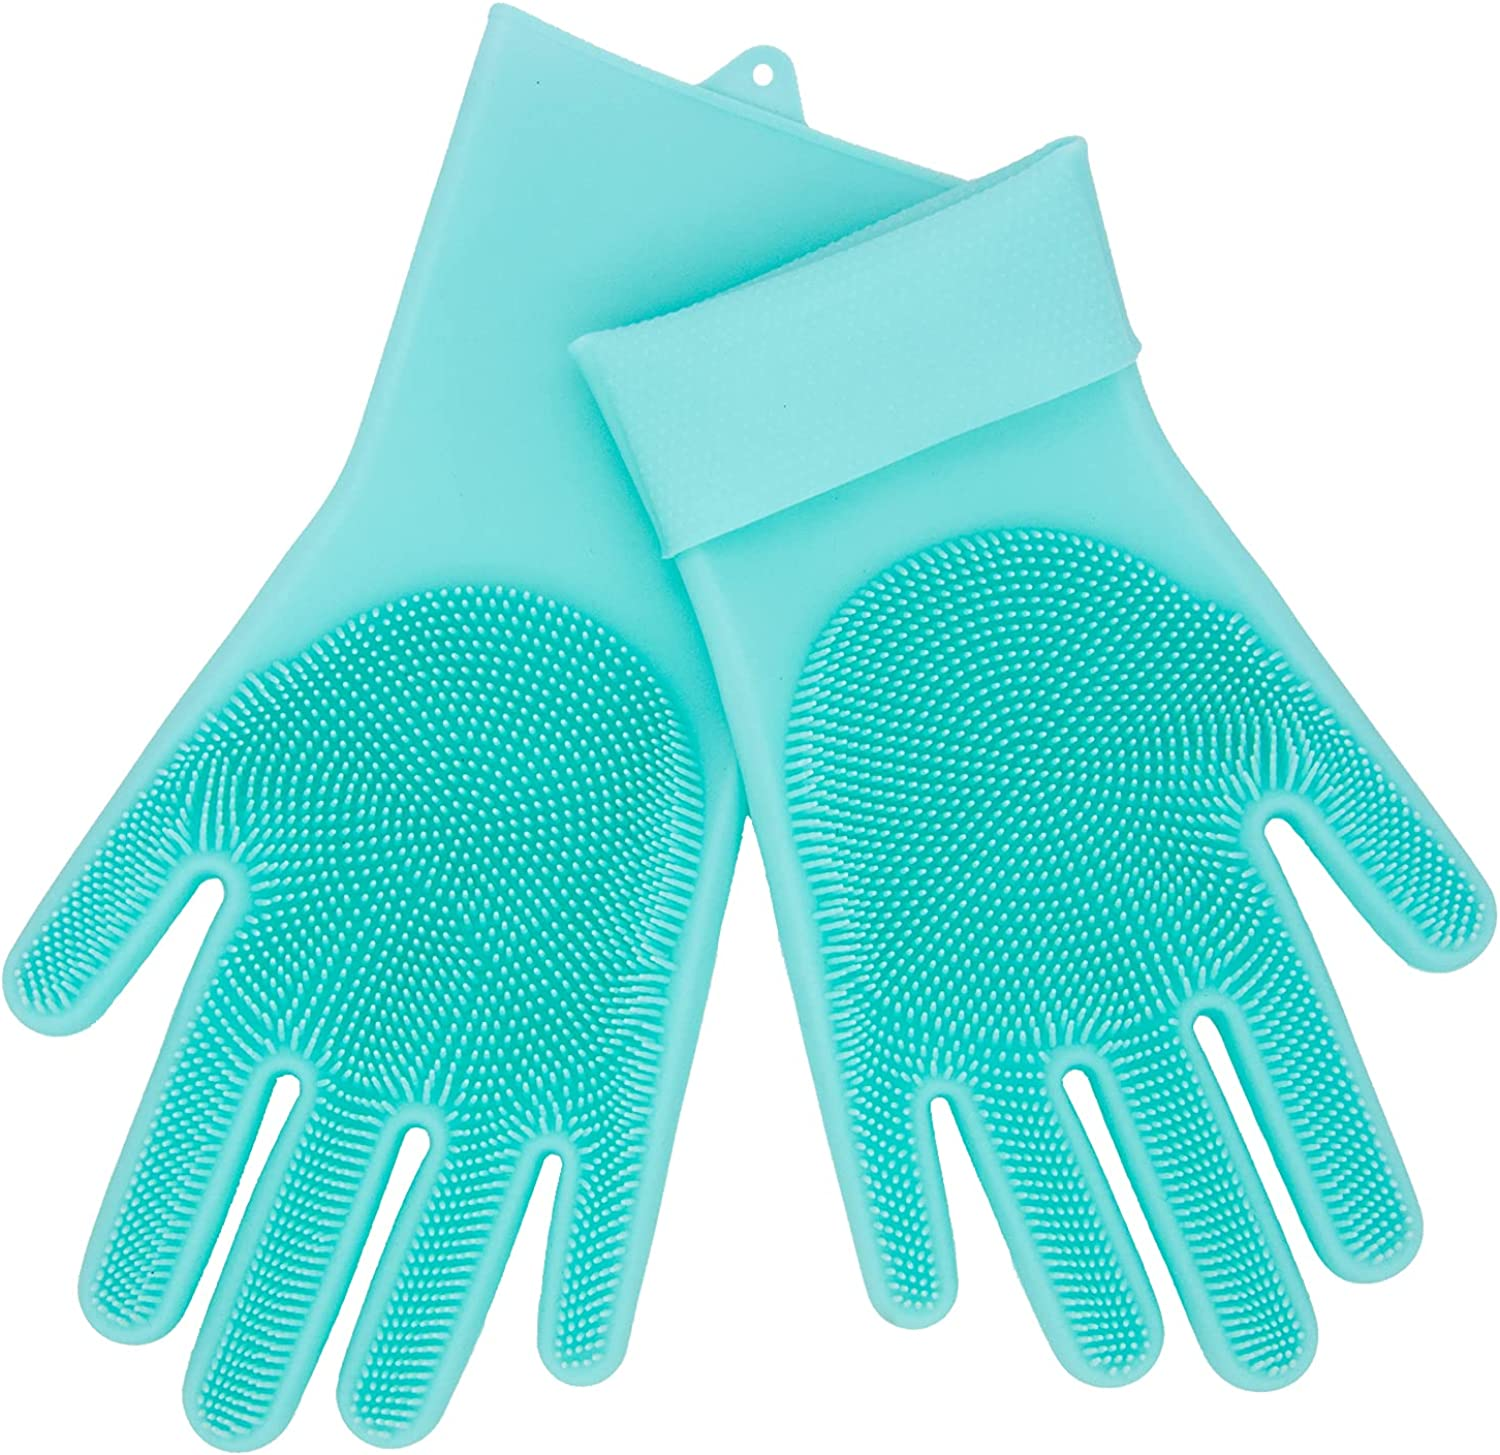 Silicone Dishwashing Gloves Reusable Non slip Heat Resistant for Kitchen Bathroom Car Wash Pet large 240g thick 1 Pair